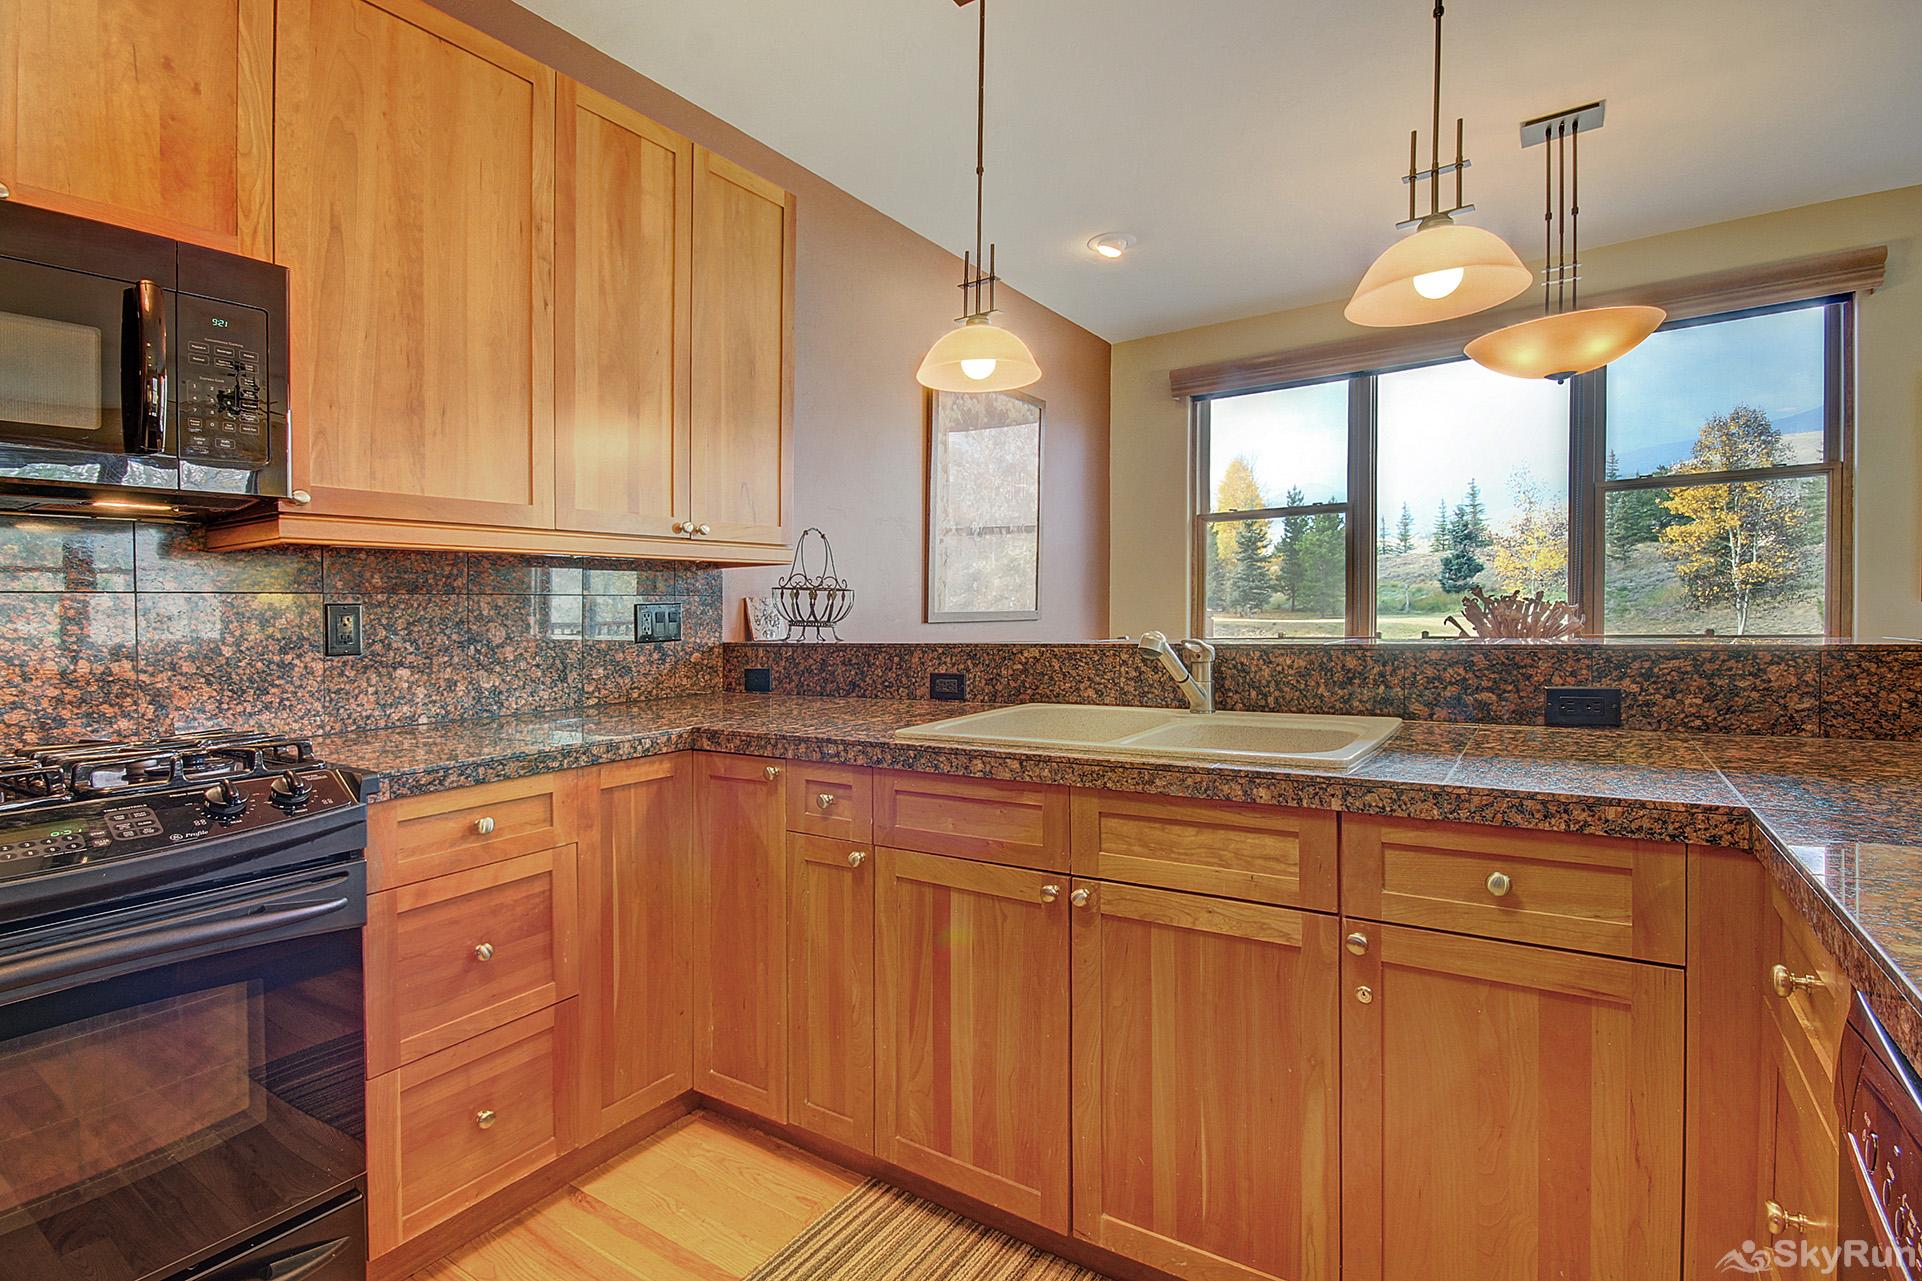 Highland Greens Spruce Enjoy tasty home cooked meals in your fully equipped kitchen